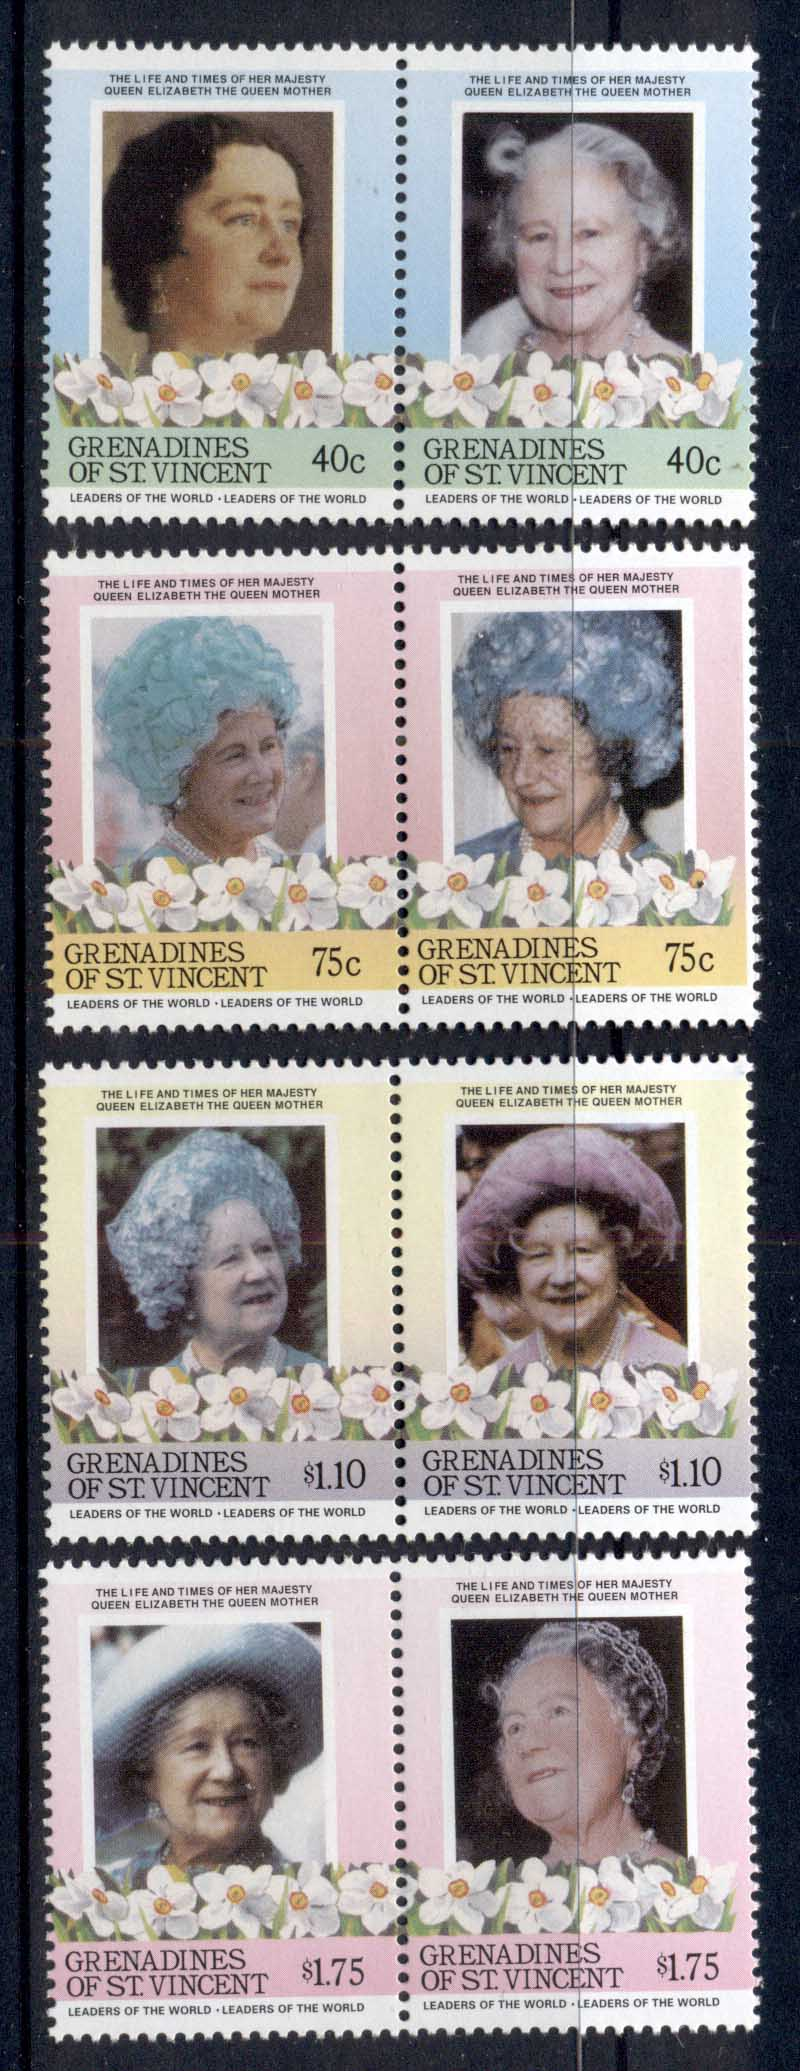 St Vincent Grenadines 1985 LOW Queen Mother 85th Birthday REPRODUCTIONS Forgeries